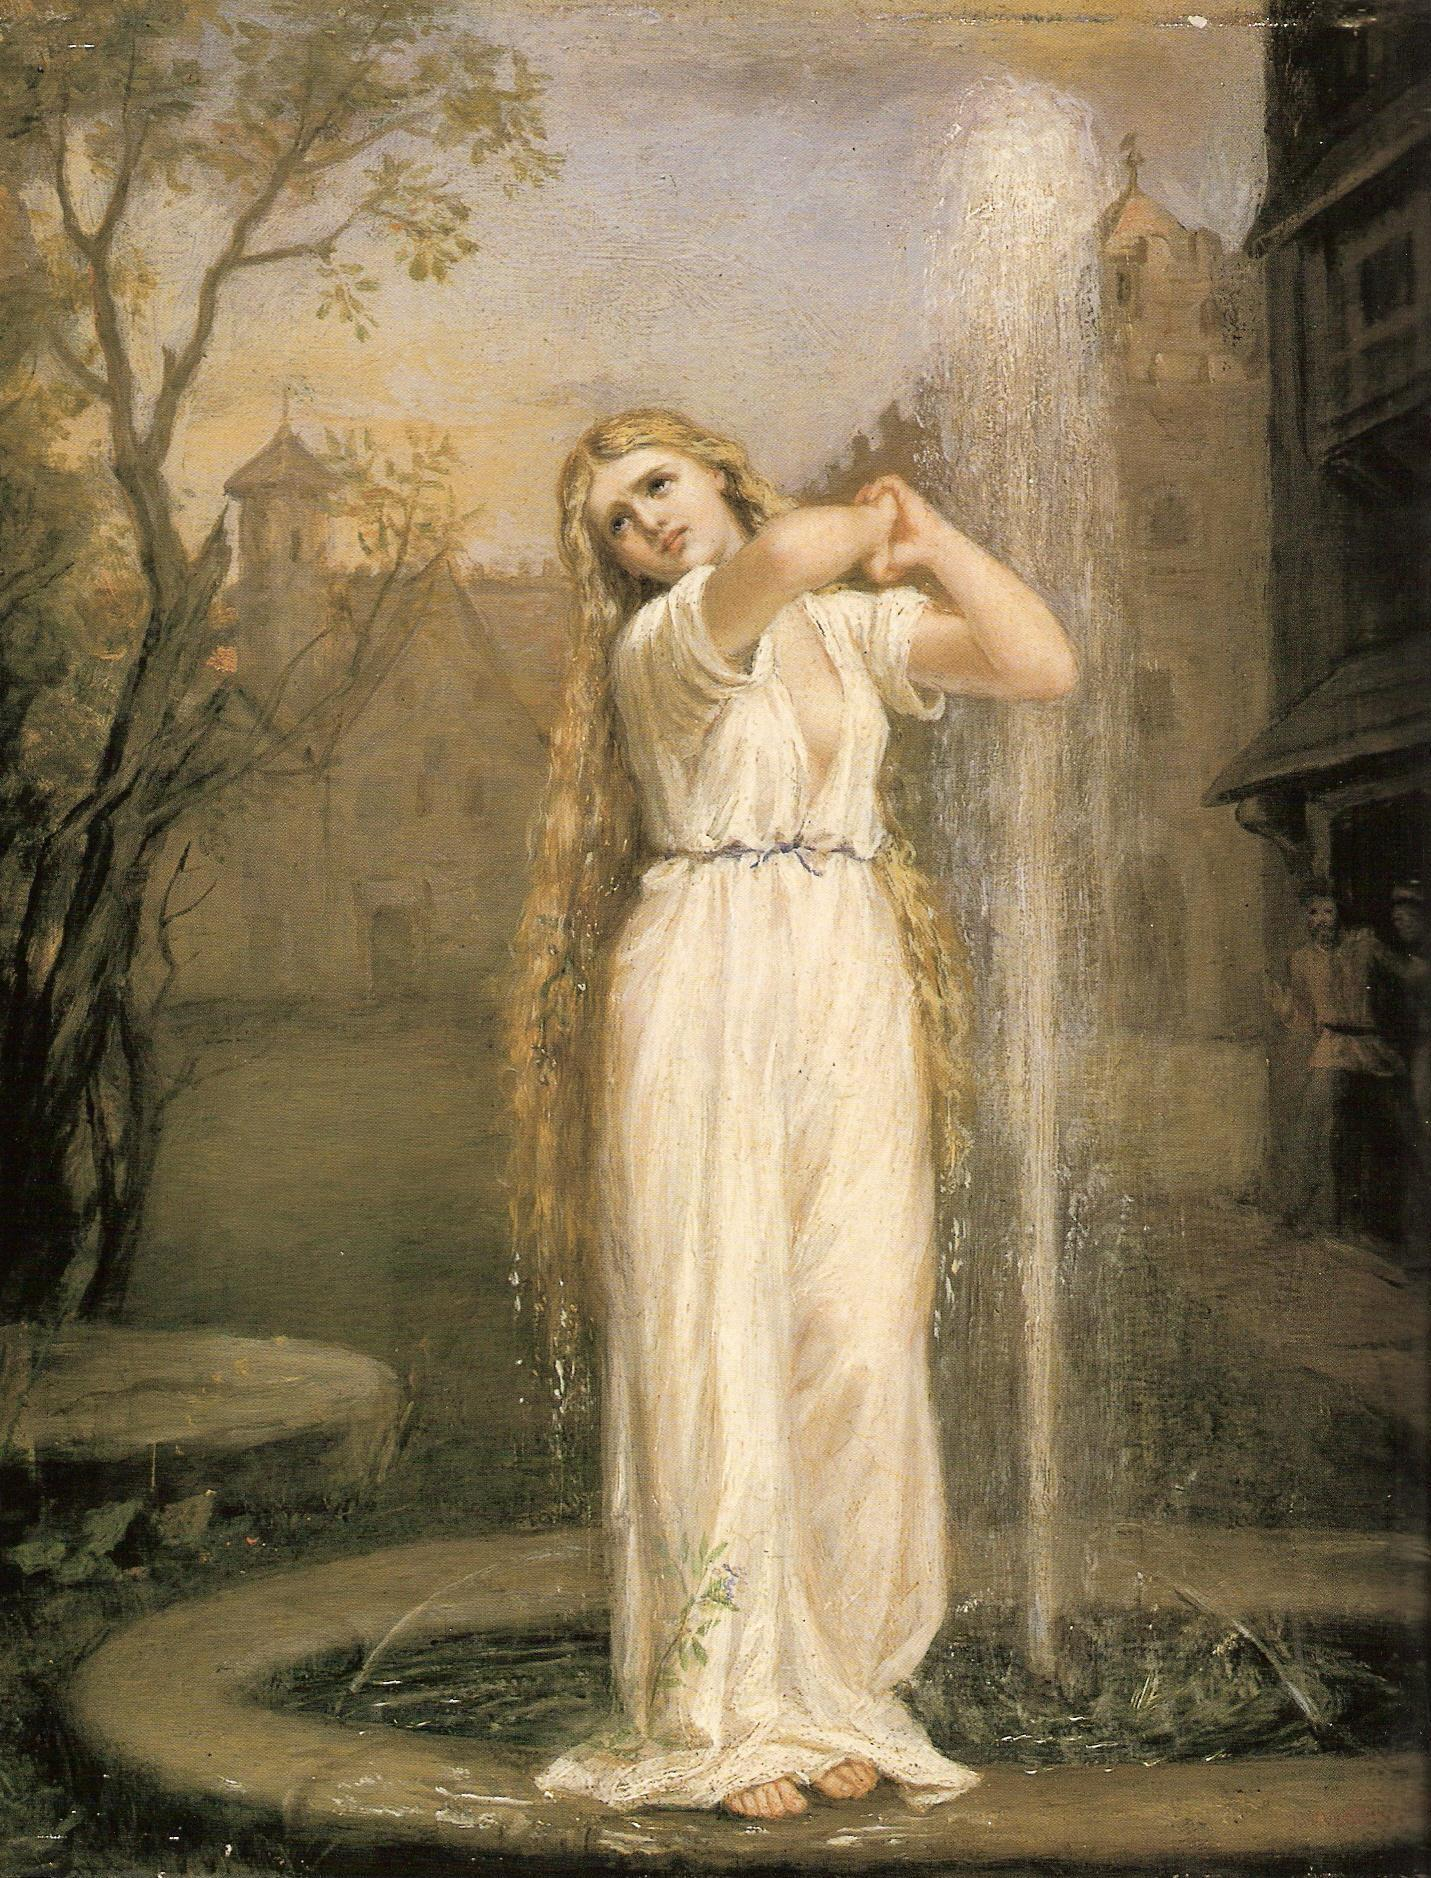 An image of the undine by John William Waterhouse.